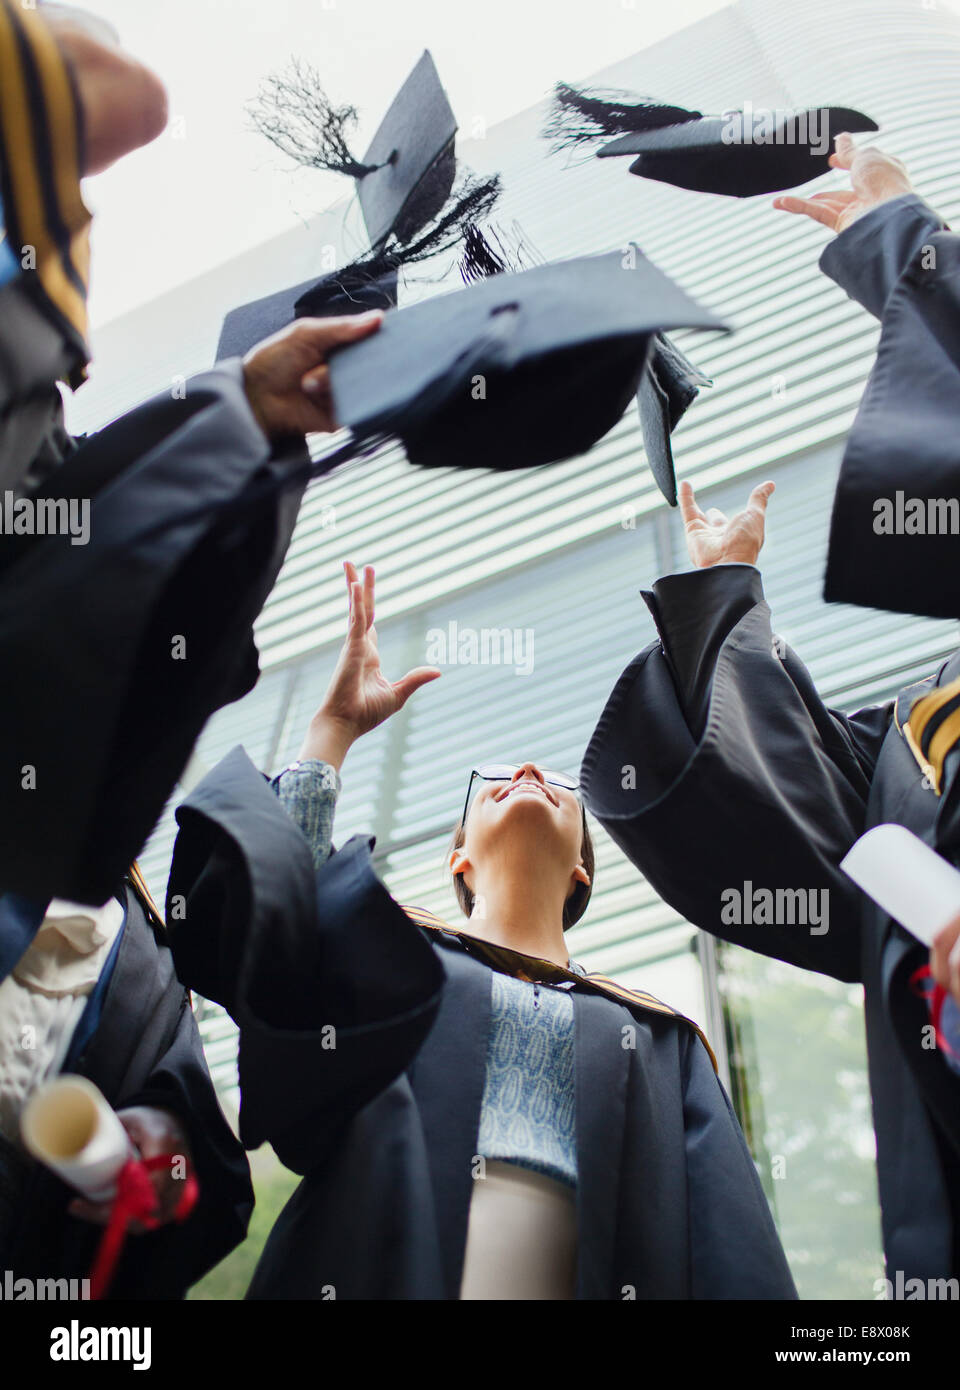 Students in gowns throwing caps in the air - Stock Image